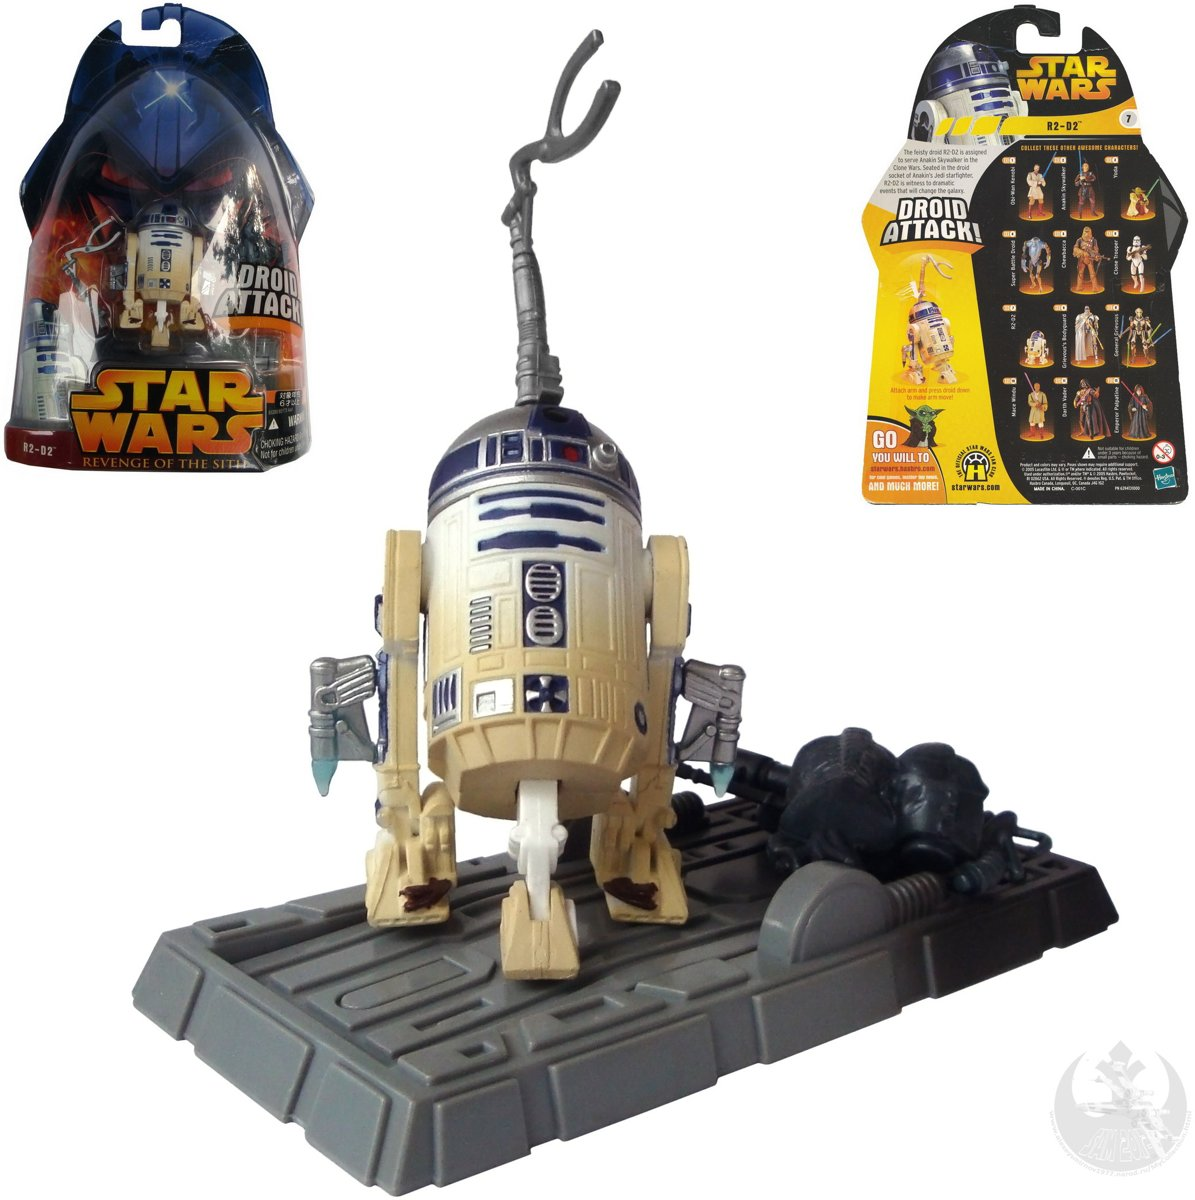 Star Wars Revenge of the Sith R2-D2 Droid Attack